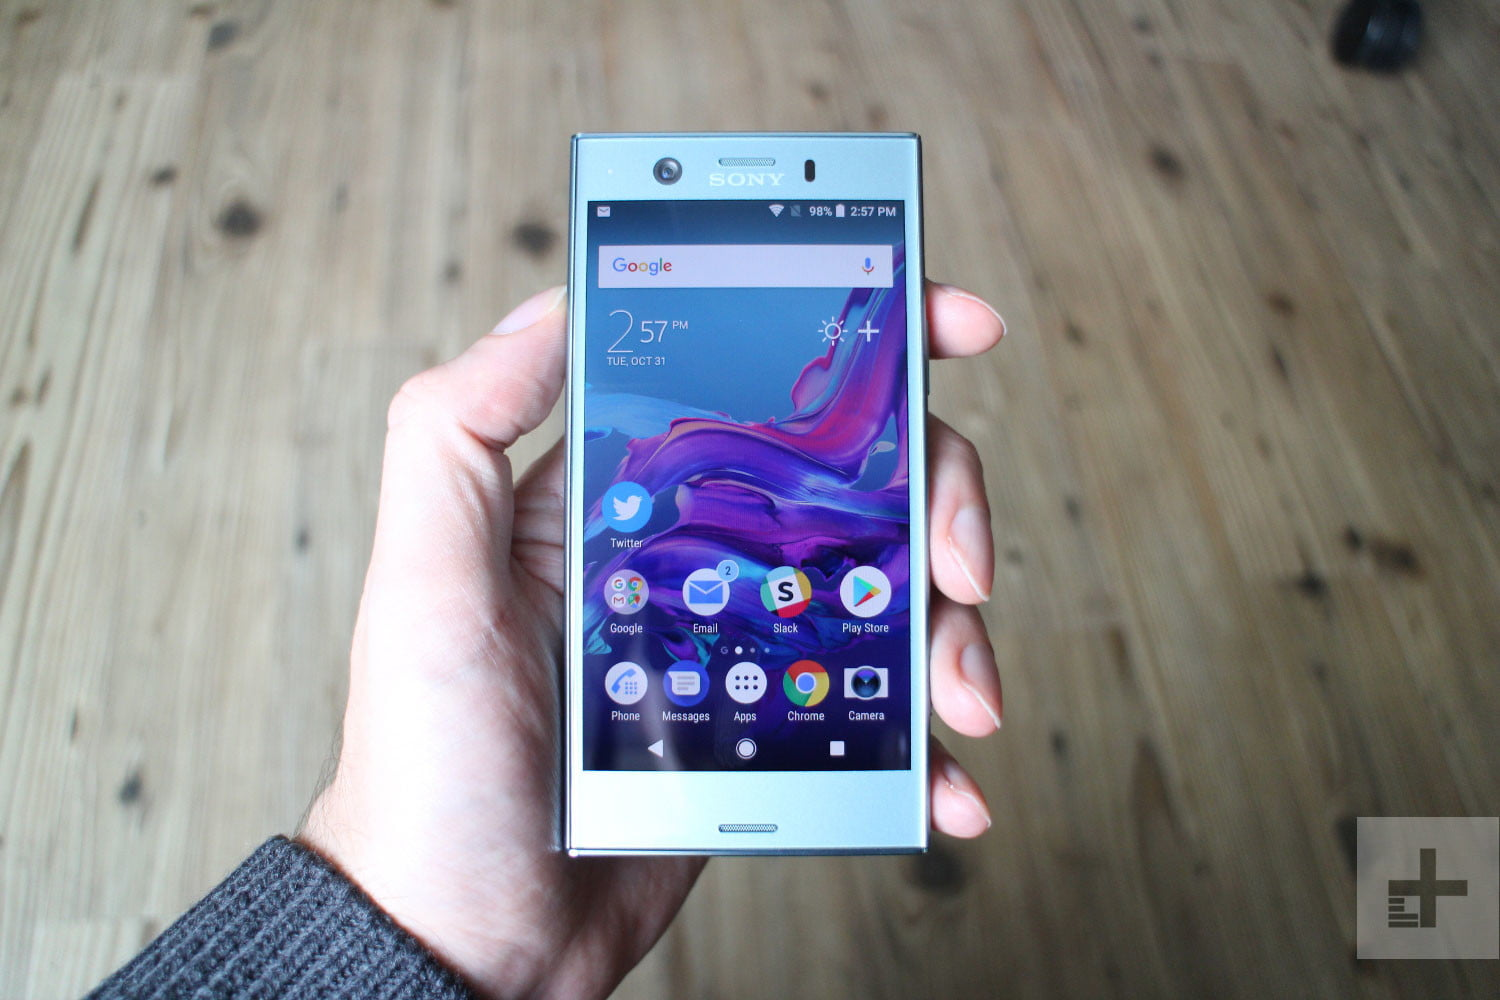 Sony Xz1 Compact System Update Sony Xperia Xz1 Compact Review Digital Trends